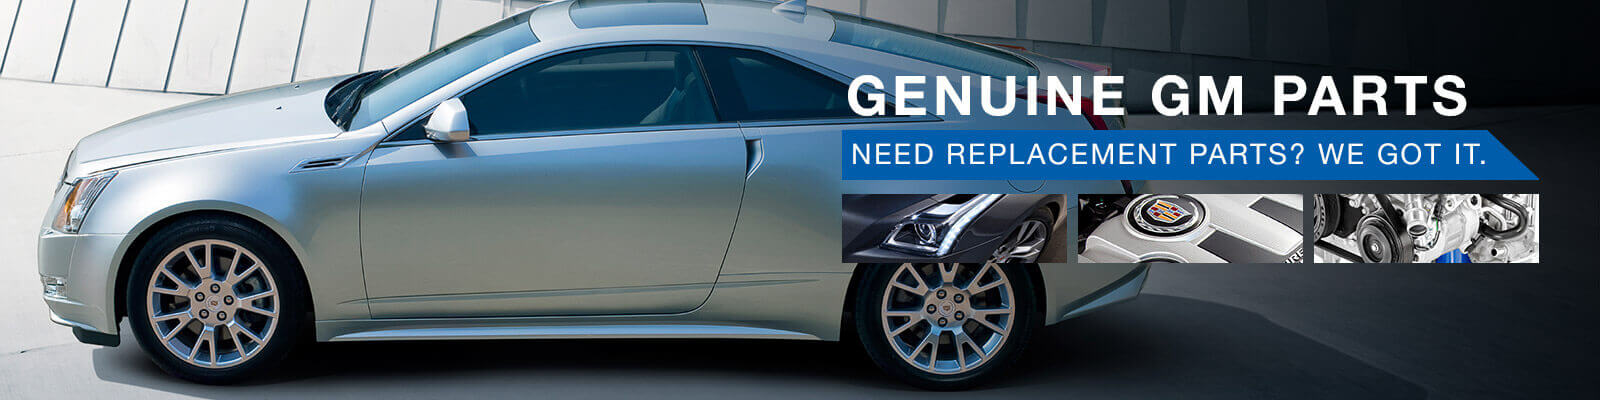 Genuine GM parts